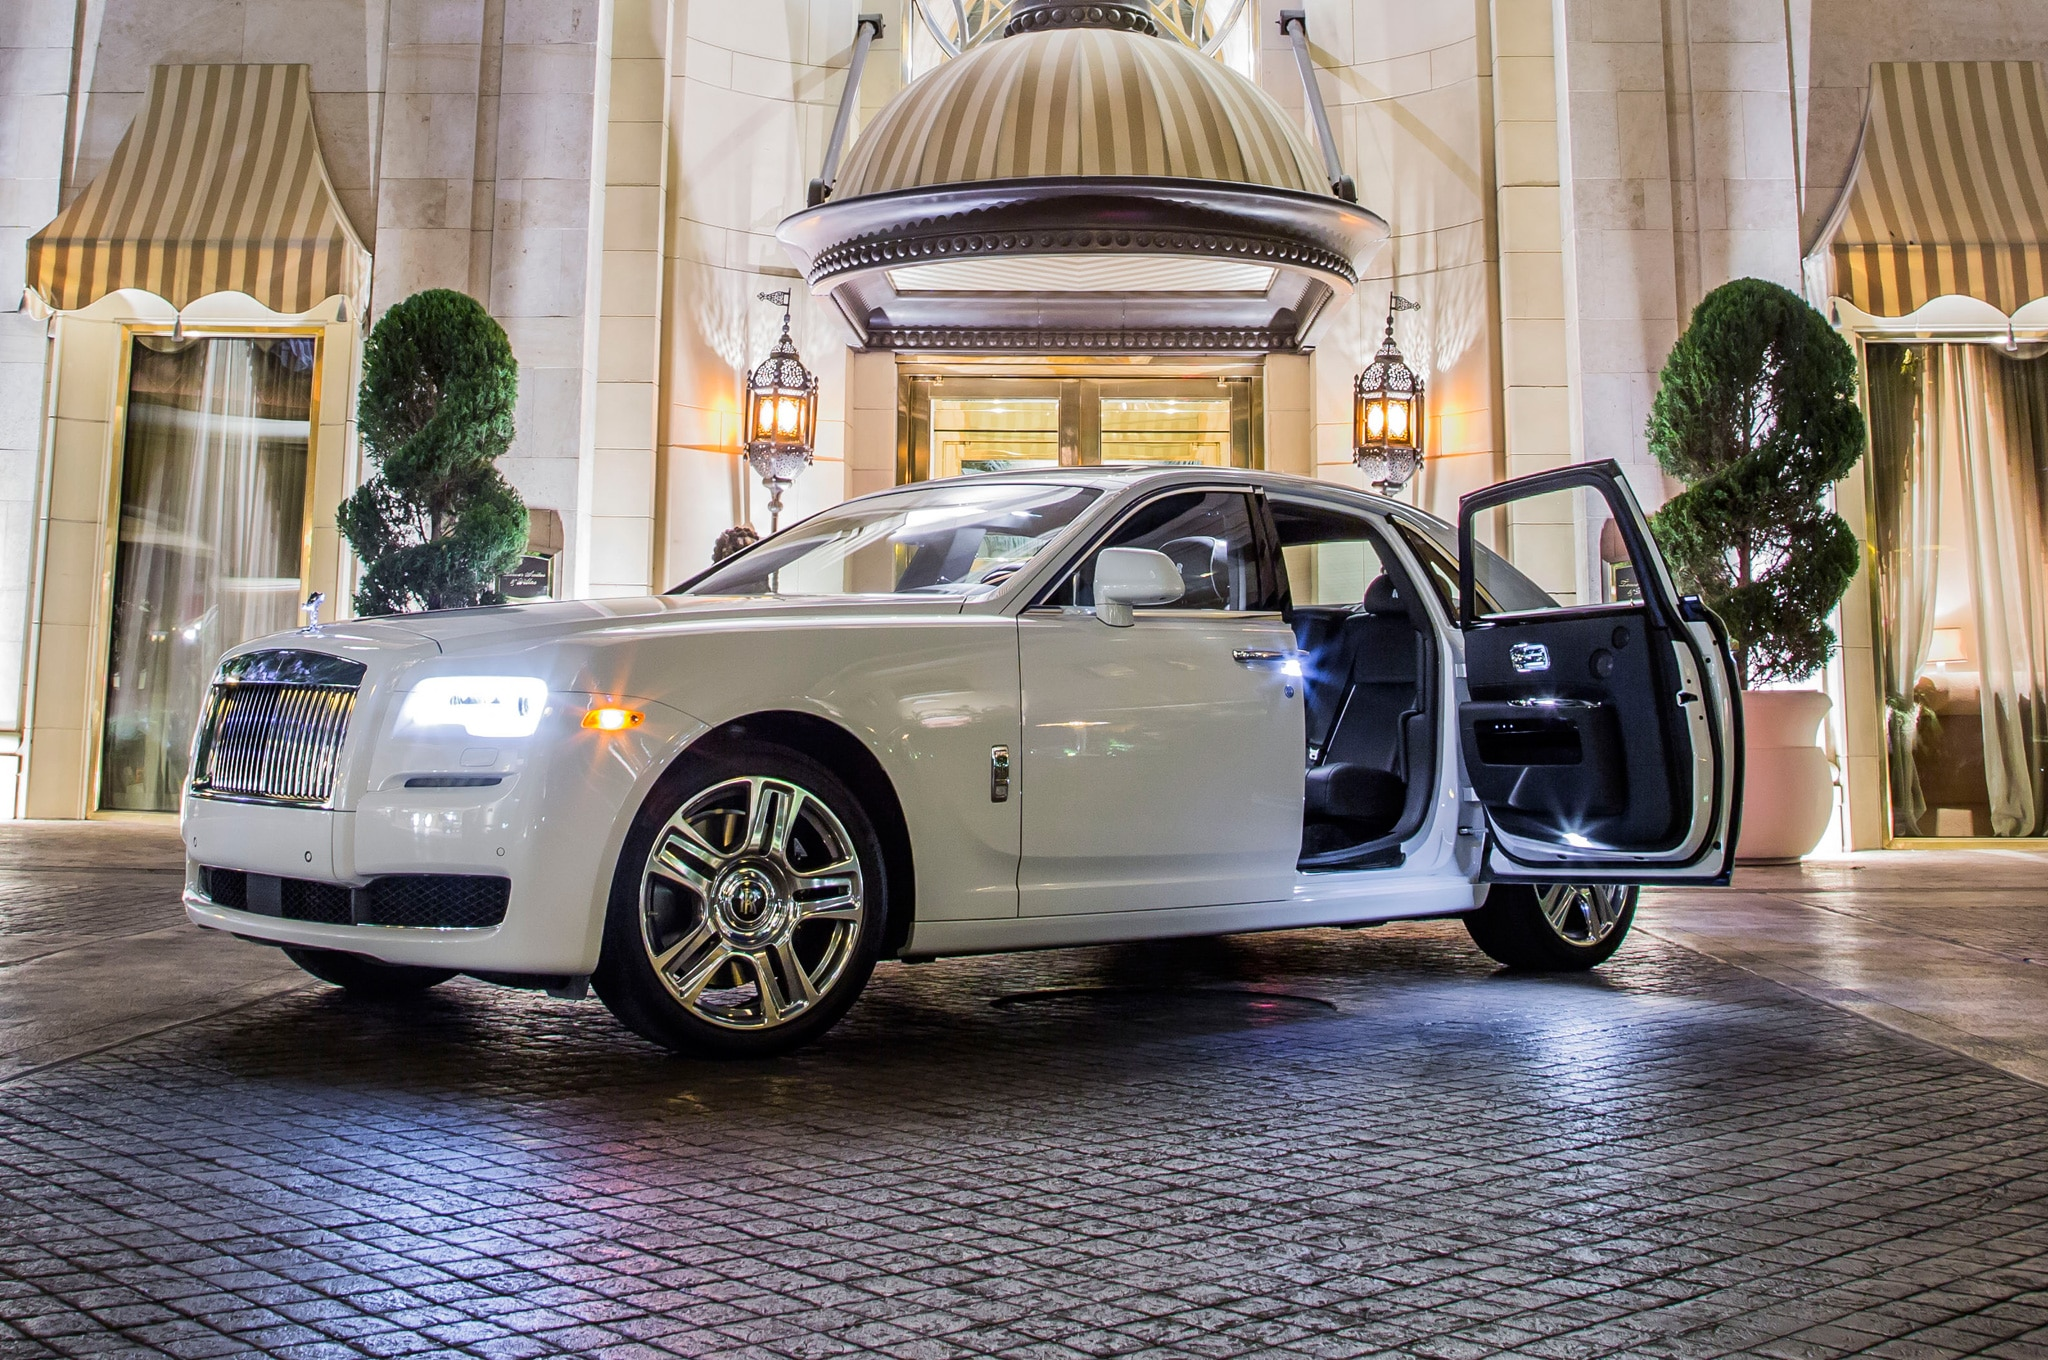 White-Glove Treatment: Learning To Be A Rolls-Royce Chauffeur